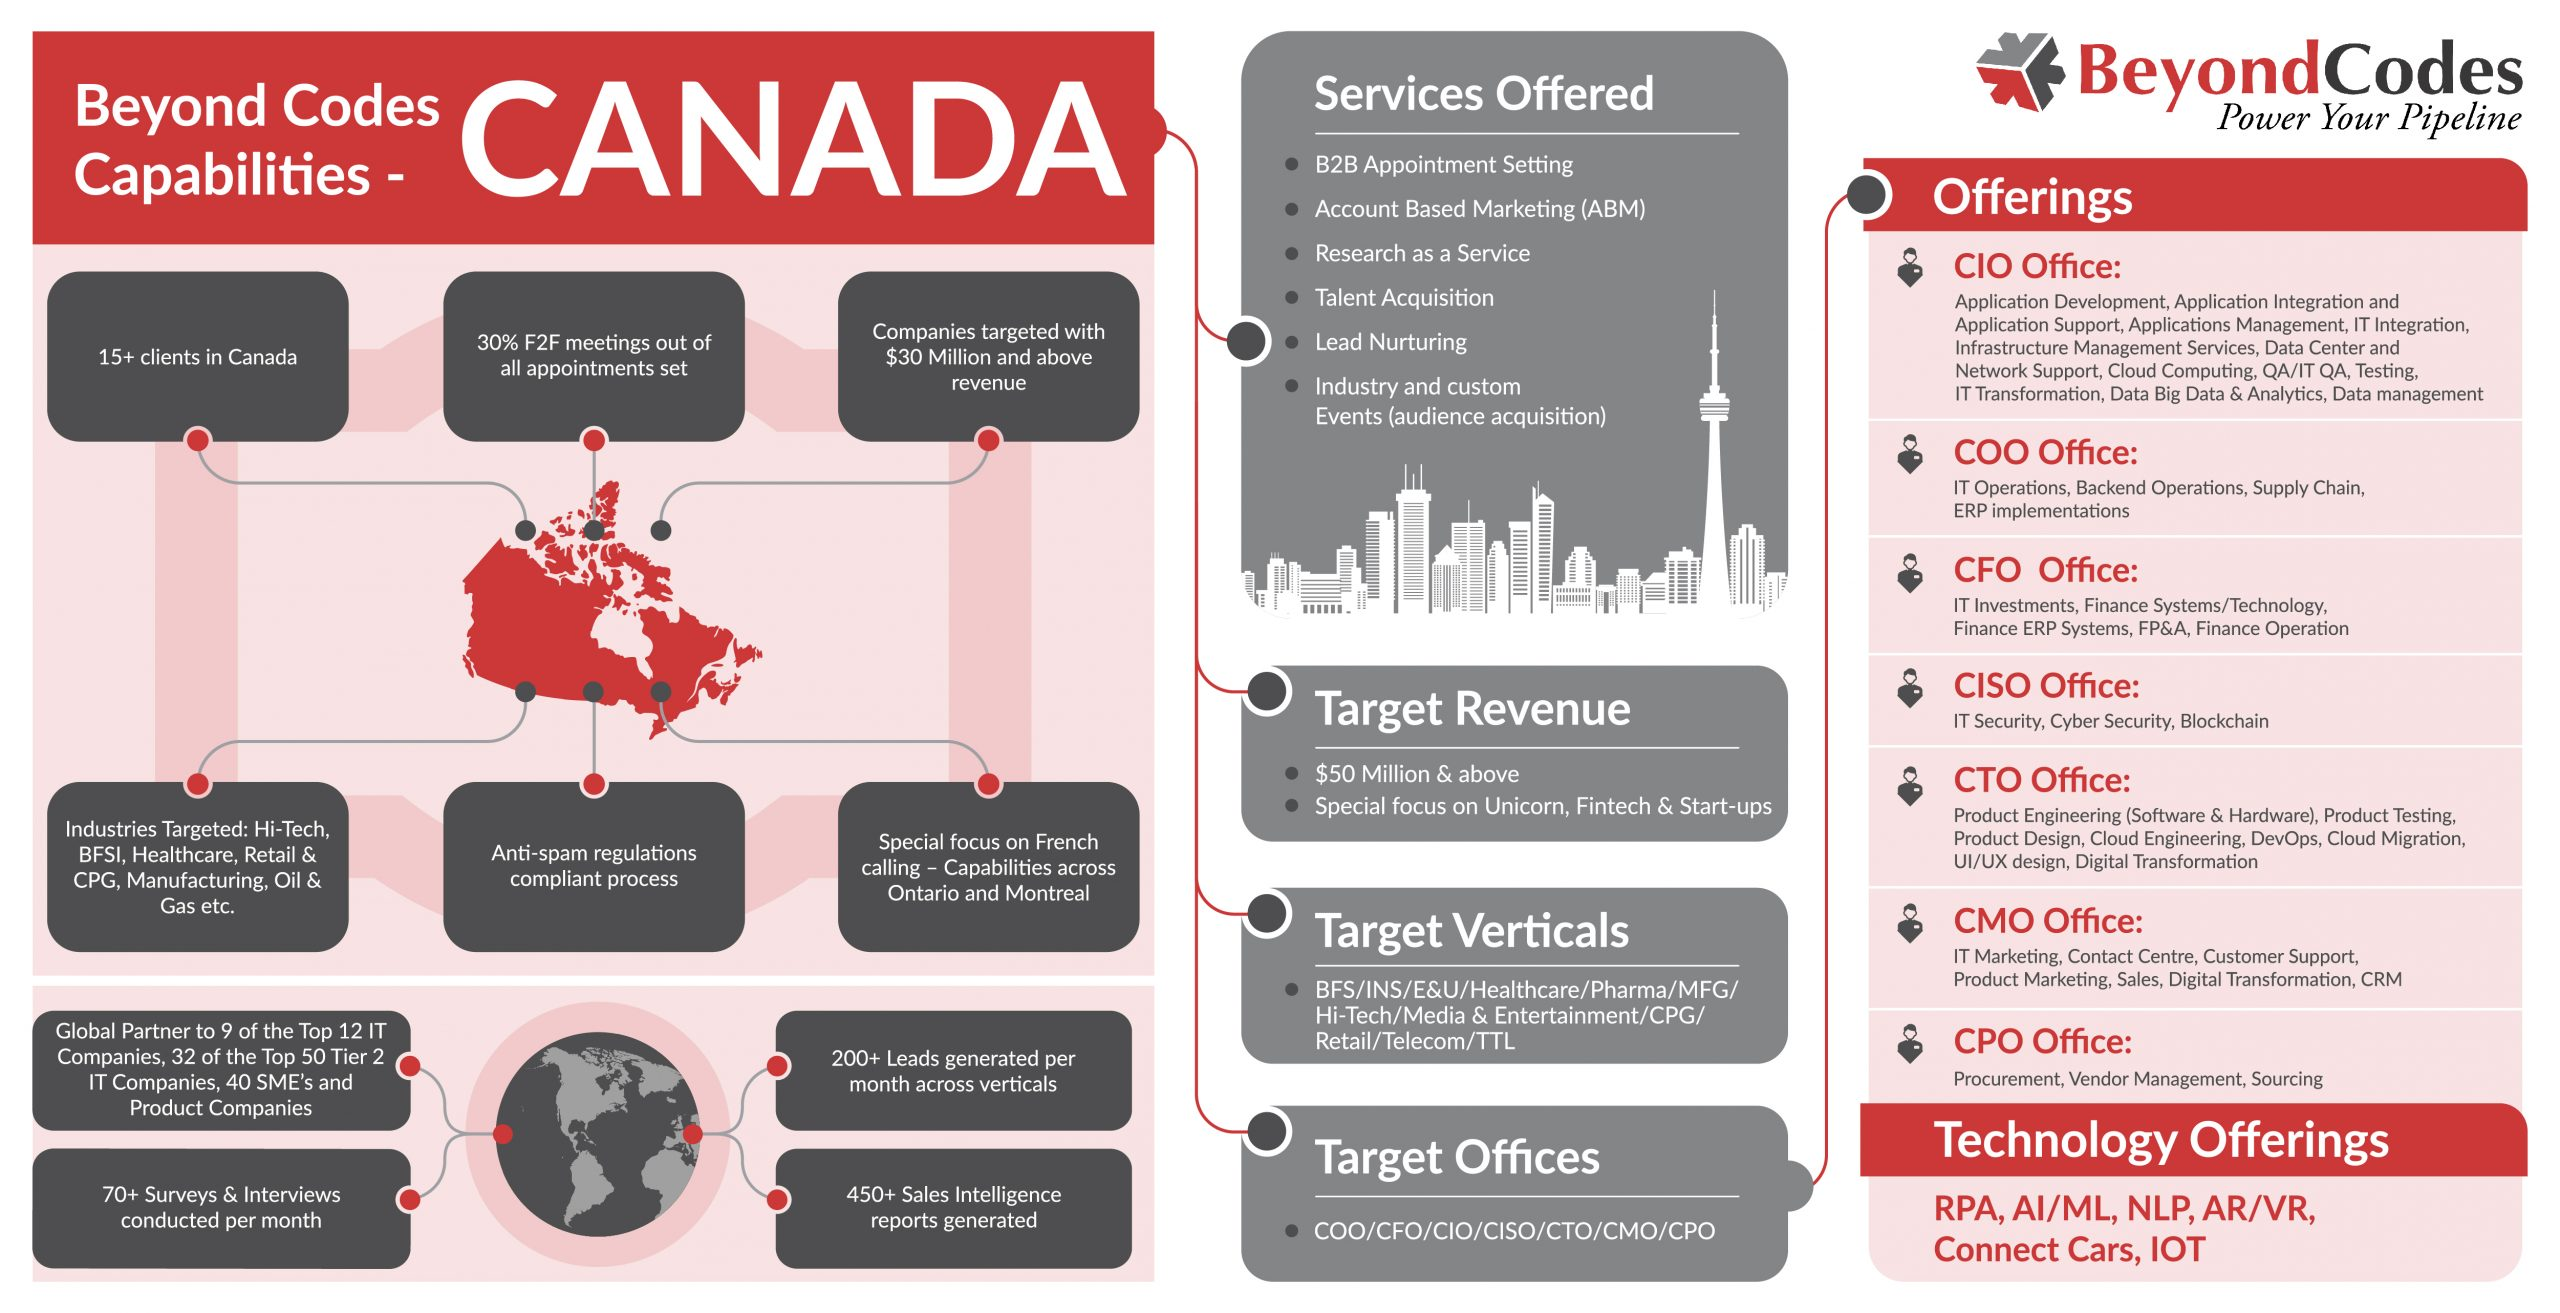 Canada is a very distinct market compared to the US or other growing economies of the world. Our services in the Canadian markets are based upon cultural and geographic diversity that Canada is known for. Our multilingual capabilities with special focus on French(the second most spoken language in Canada), our ground-level support across Montreal and Ontario, and our Anti-Spam Compliant processes are designed specifically to help you succeed in these diverse markets. See our capabilities in the Canadian markets.